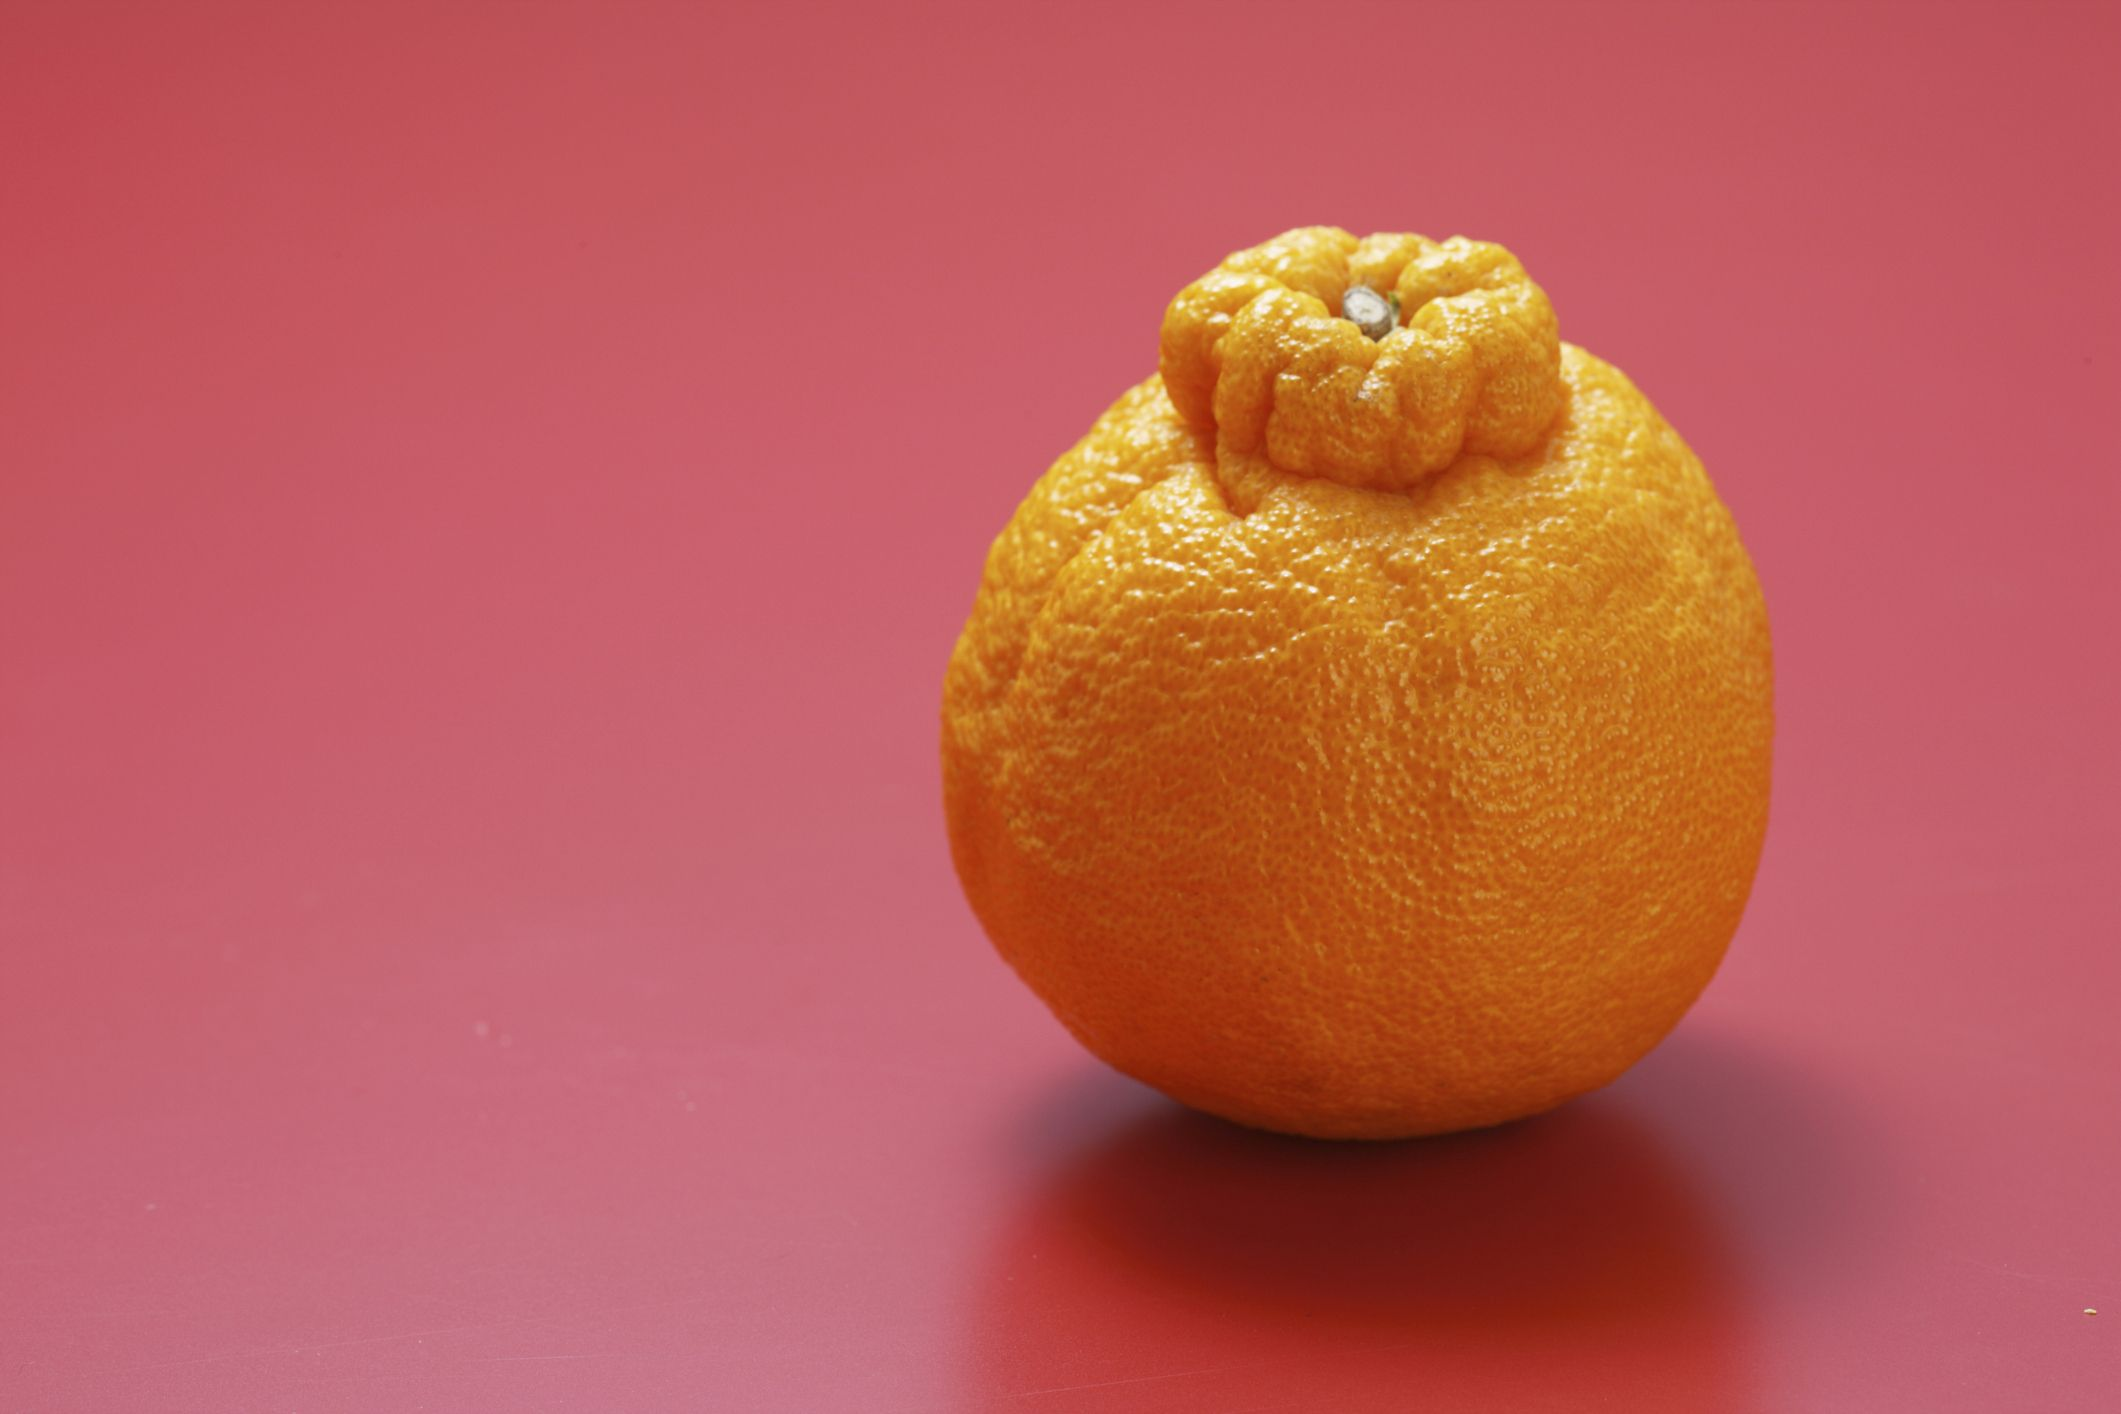 What The Heck Are Sumo Oranges And Why Are They Everywhere?